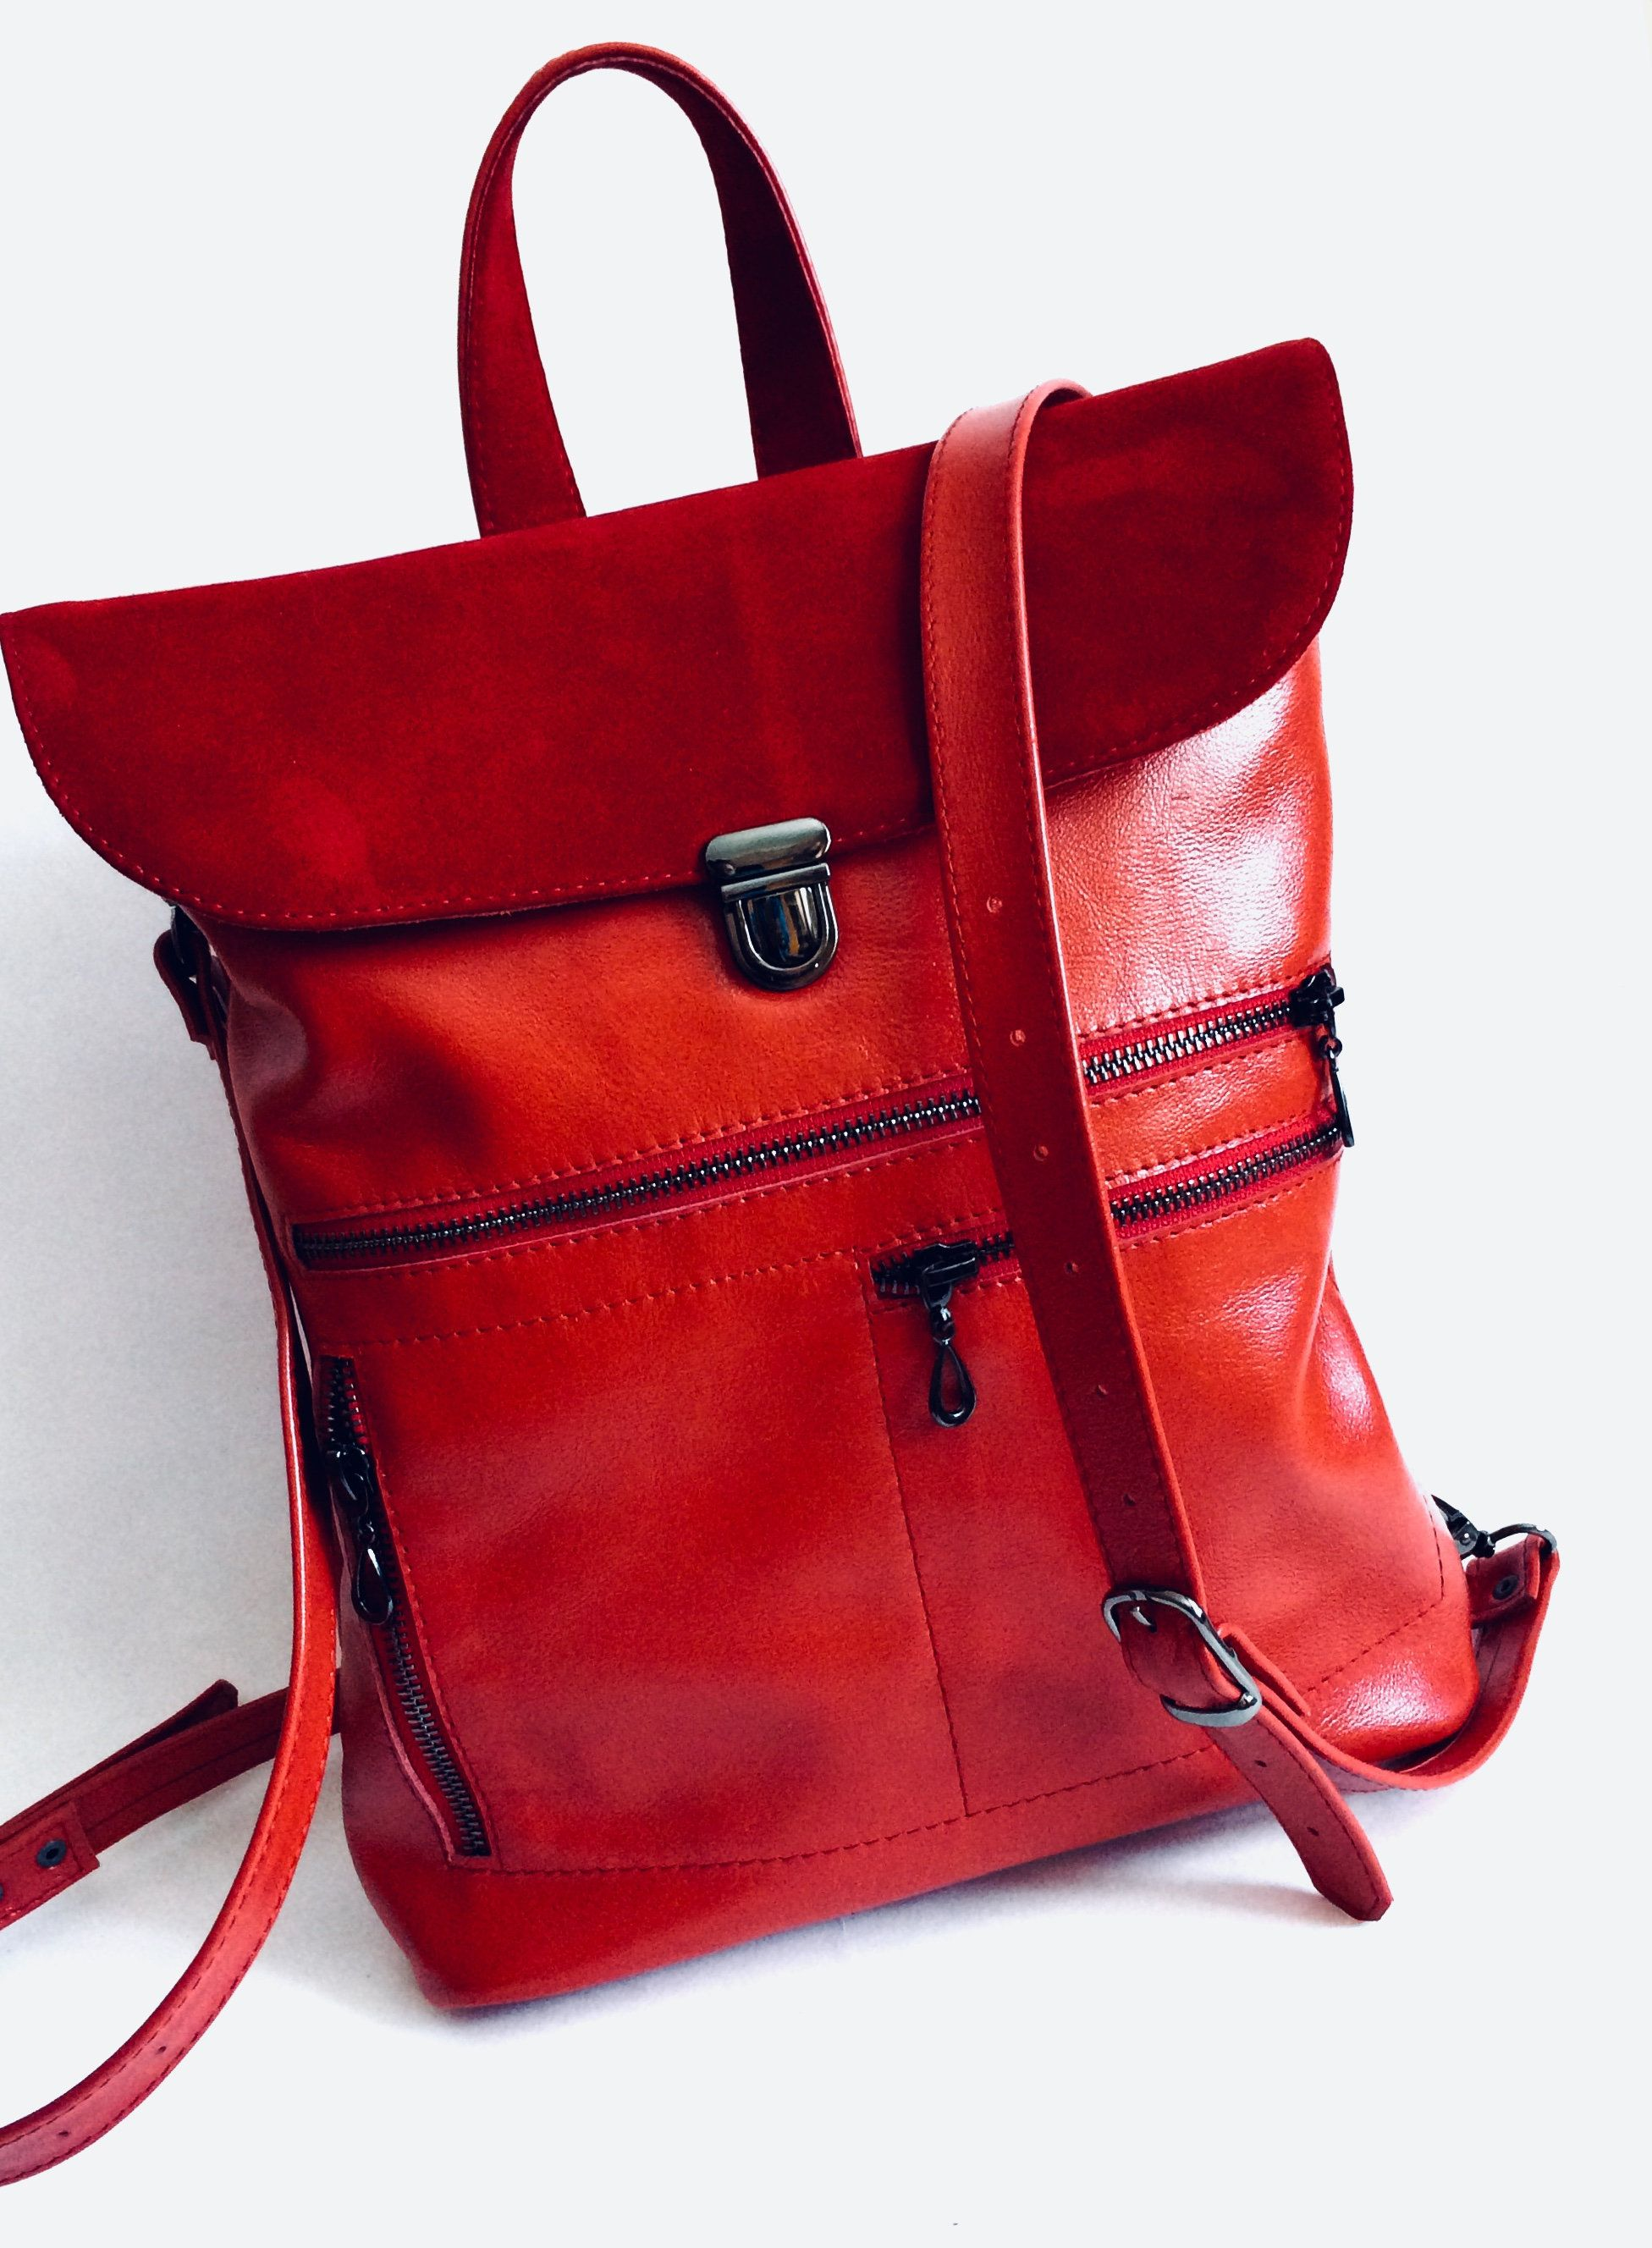 LITTLE Leather Backpack Purse Red, women Rucksack Leather, RED backpack,  suede backpack purse 974f38e29b